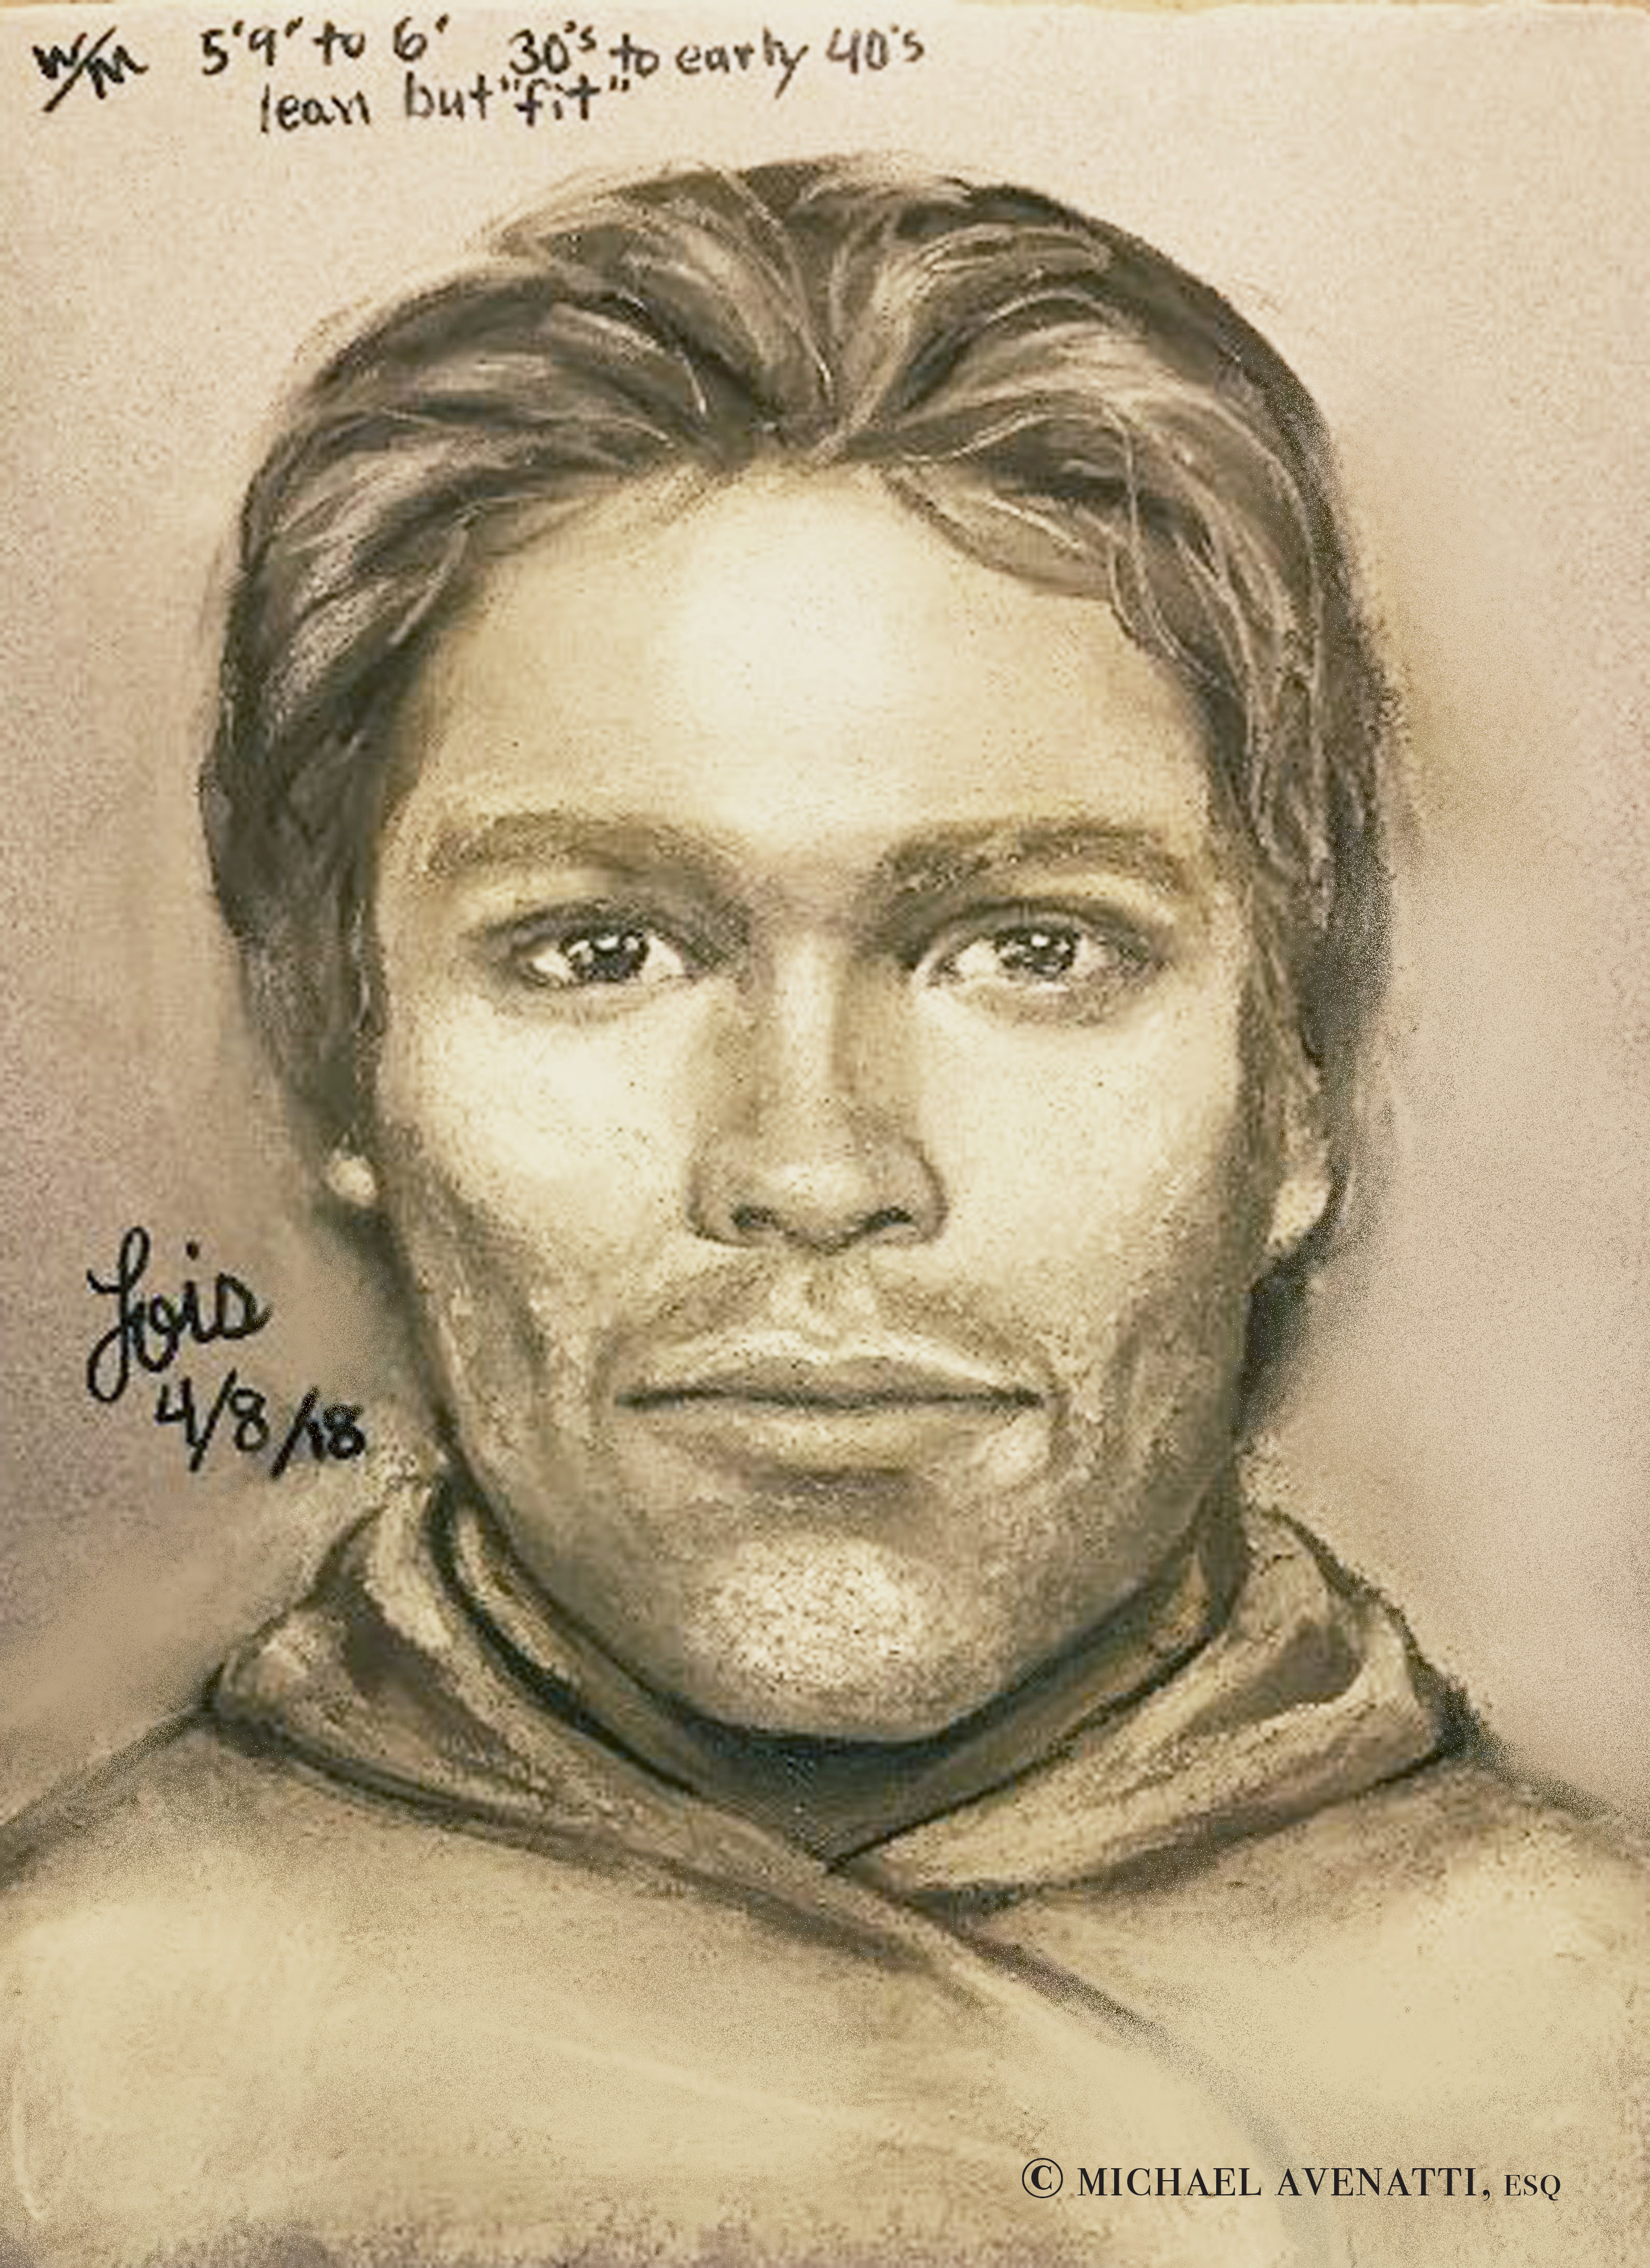 A composite sketch of the man Stormy Daniels says threatened her in a Las Vegas parking lot in 2011 to remain quiet about her affair with President Trump